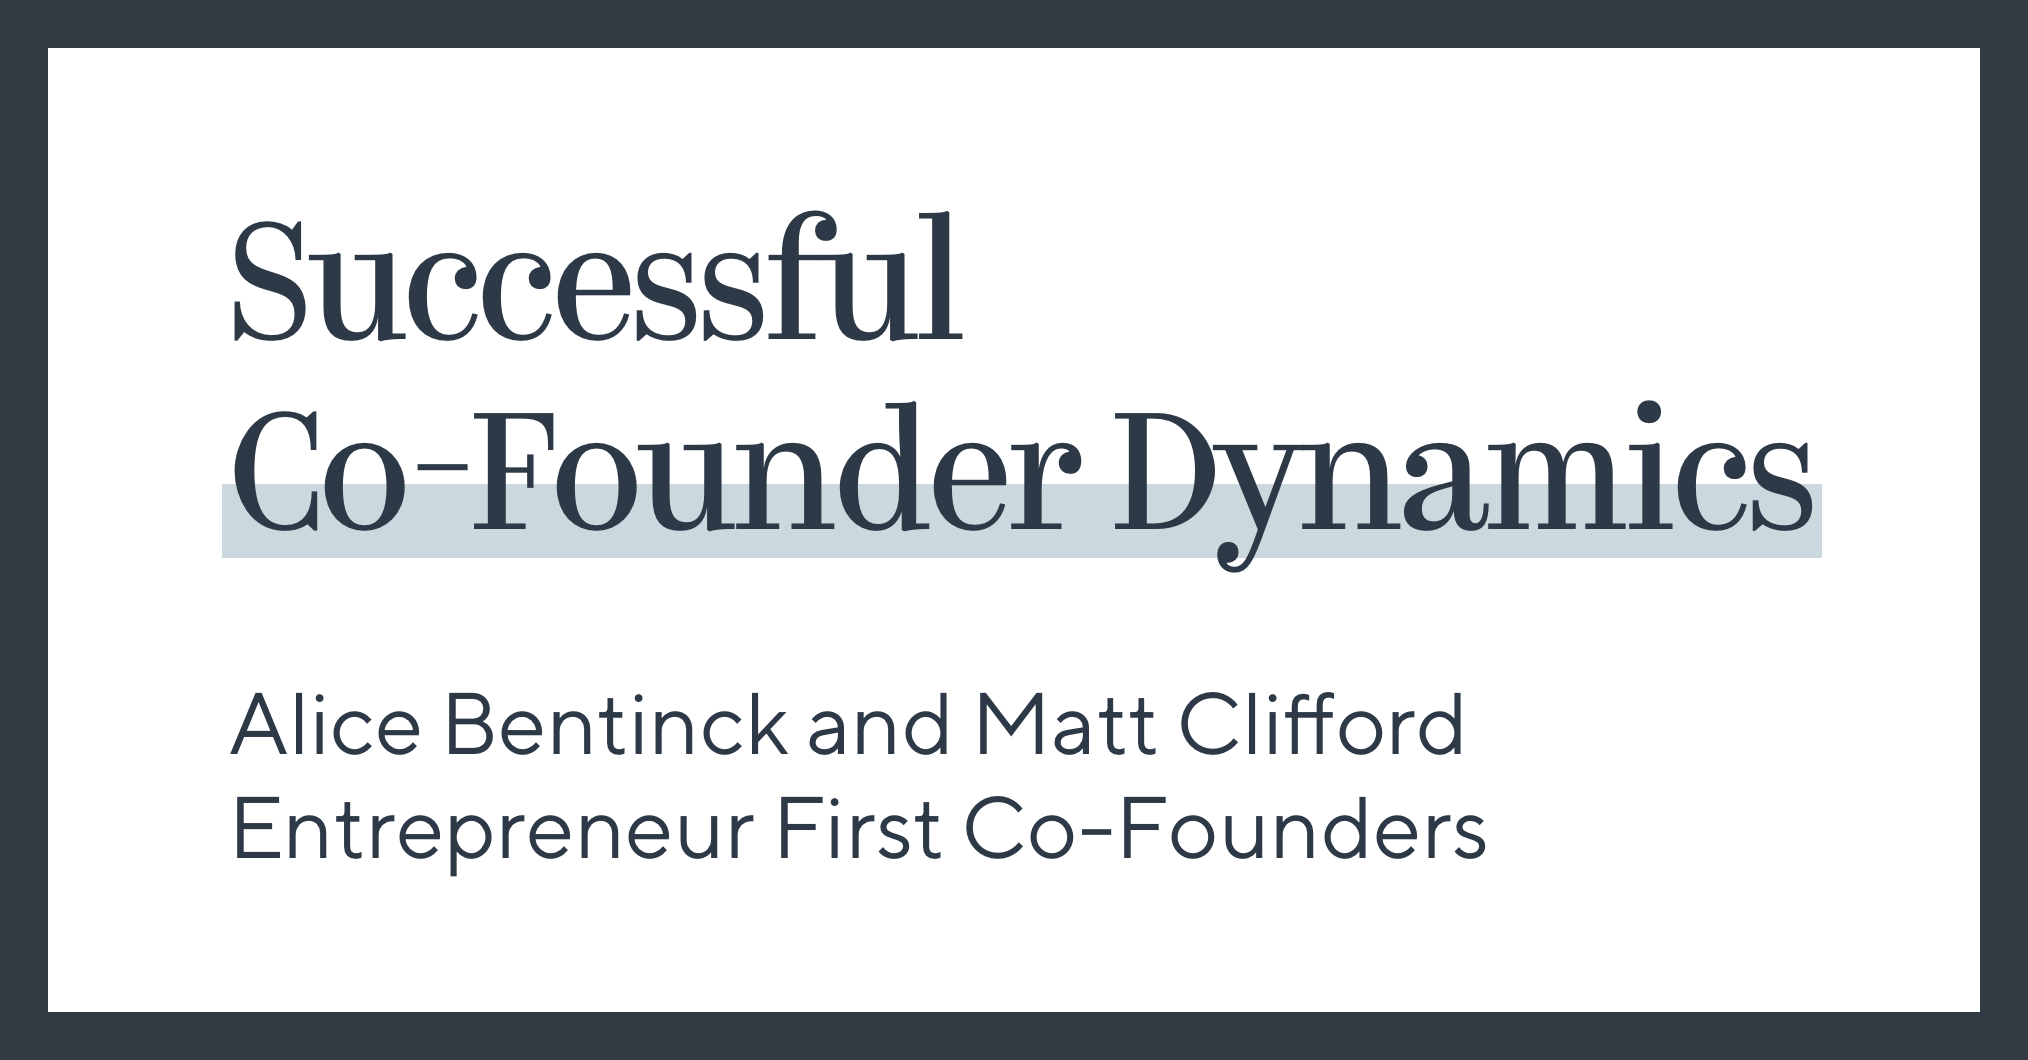 Successful Co-Founder Dynamics